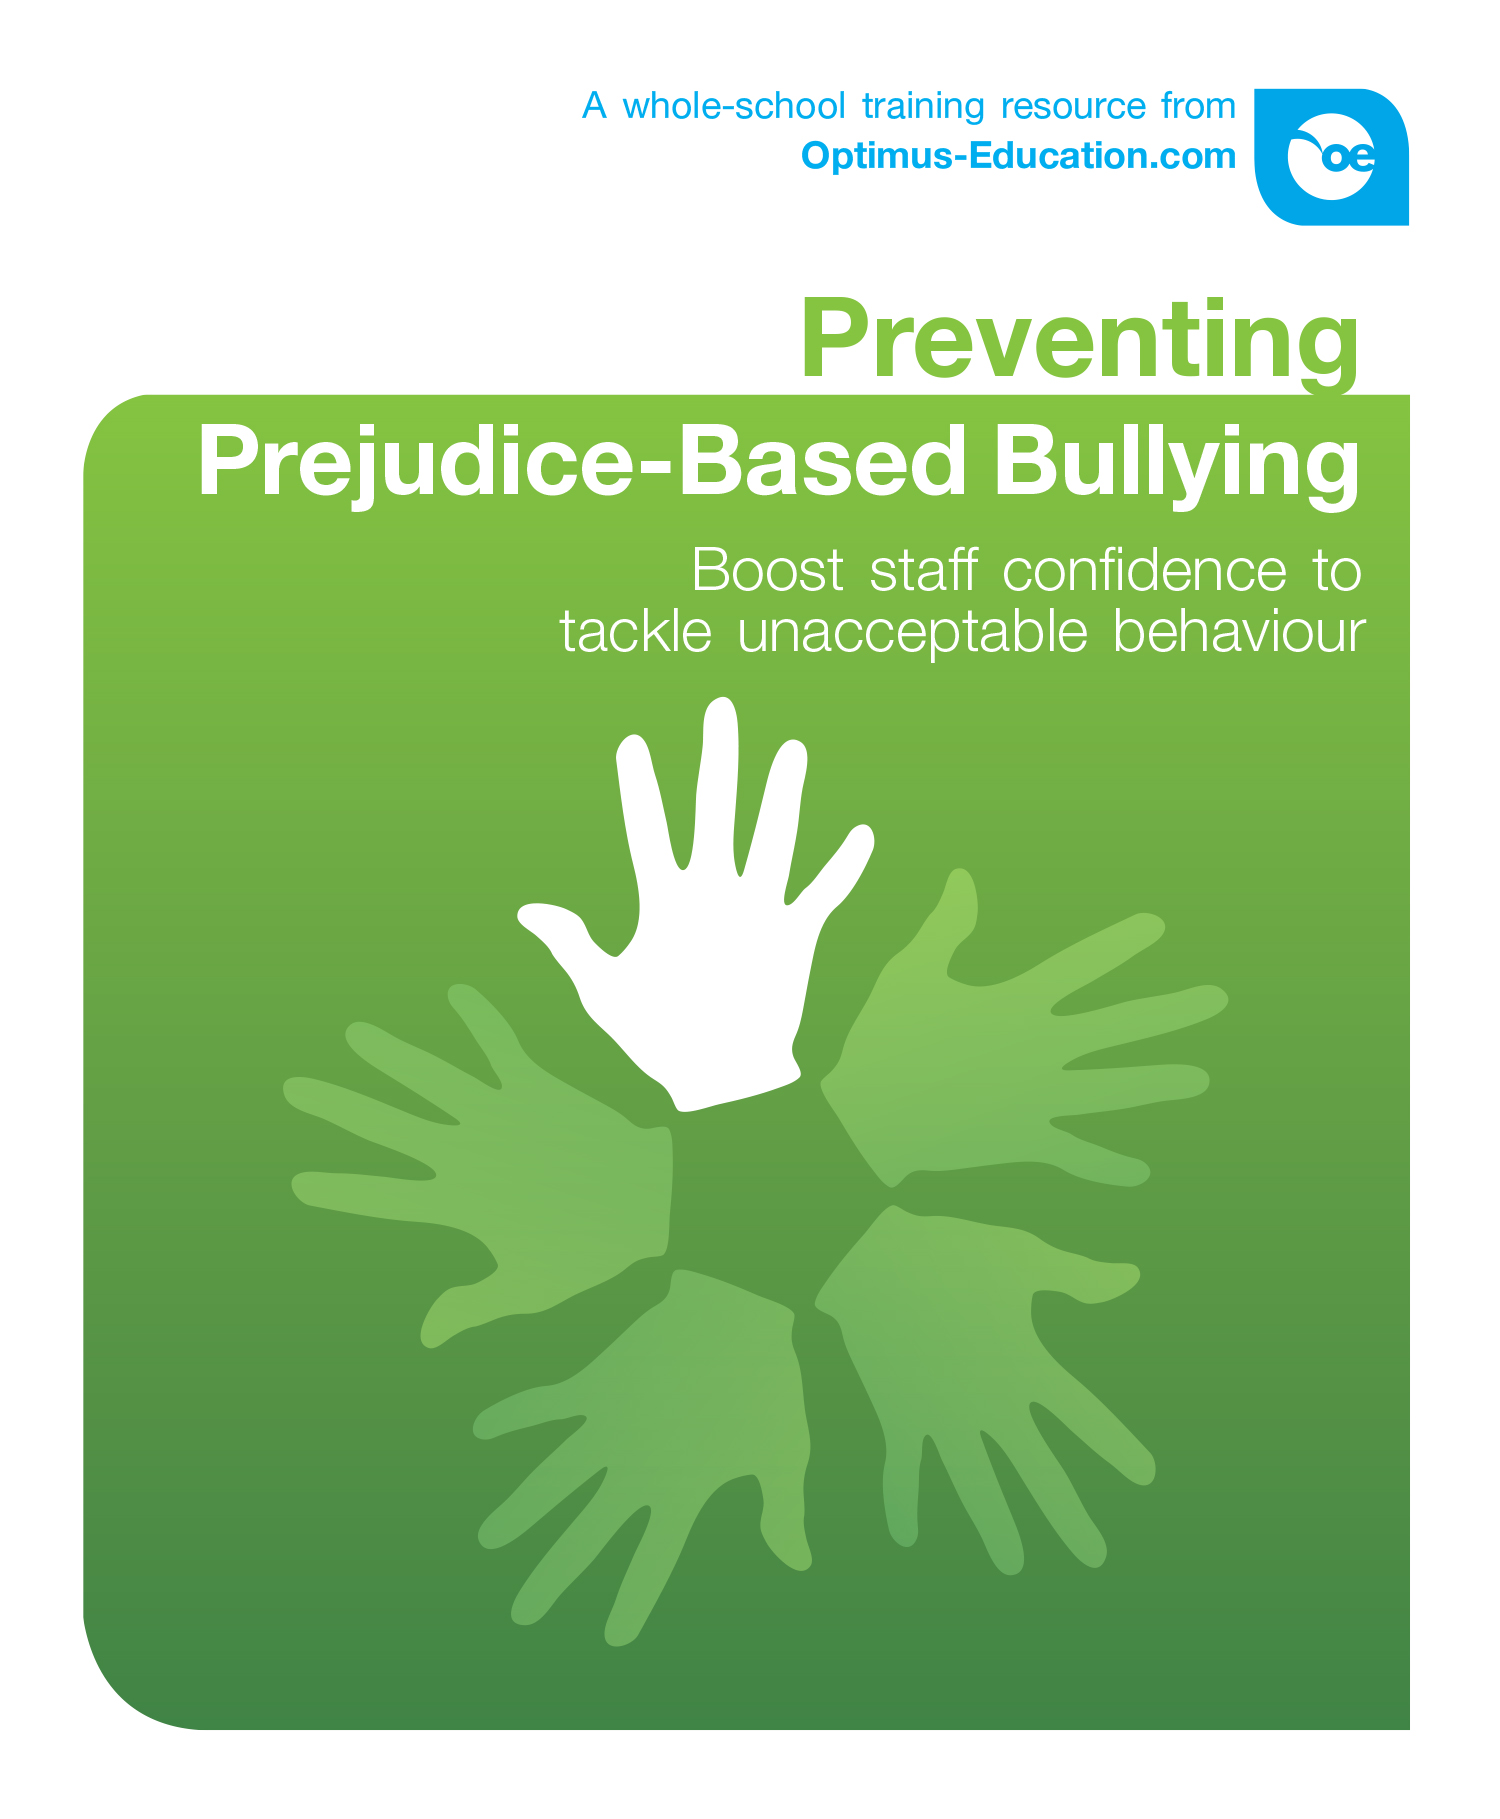 Preventing Prejudice-Based Bullying: Boost staff confidence to tackle unacceptable behaviour and language